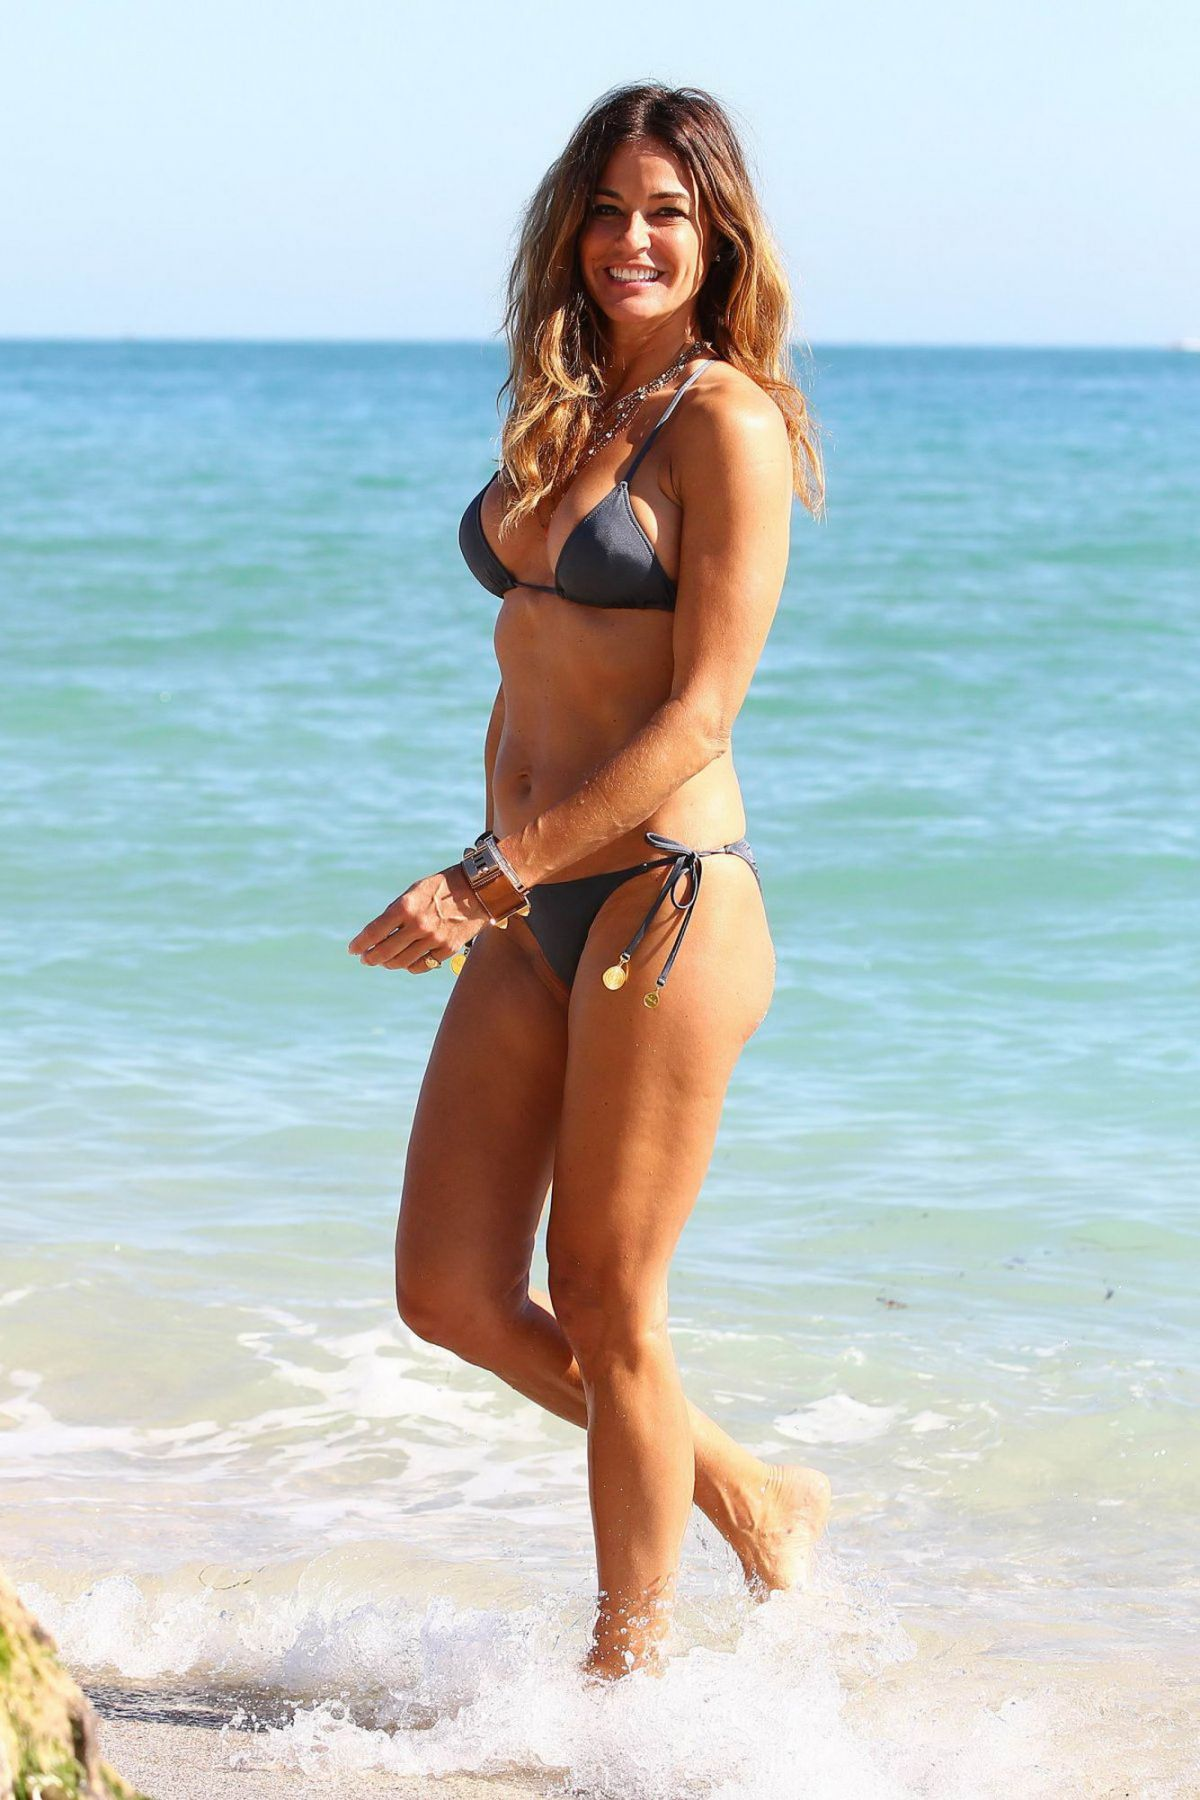 Kelly Bensimon in White Bikini in Miami Pic 26 of 35